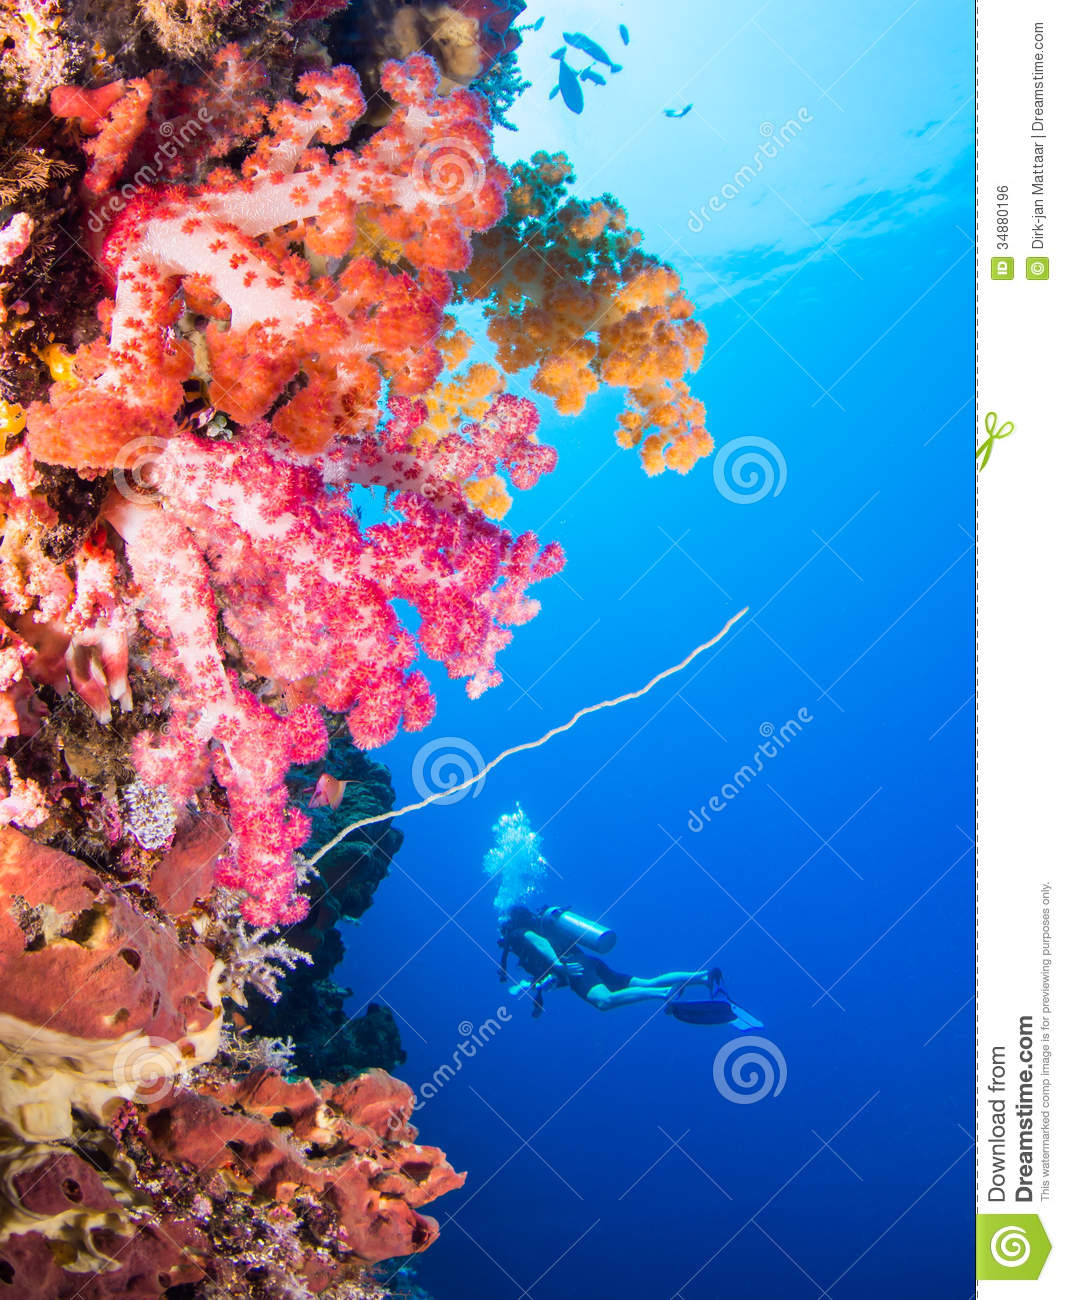 Coral Reef Background: Colorful Coral Reef Stock Photo. Image Of Scuba, Sports